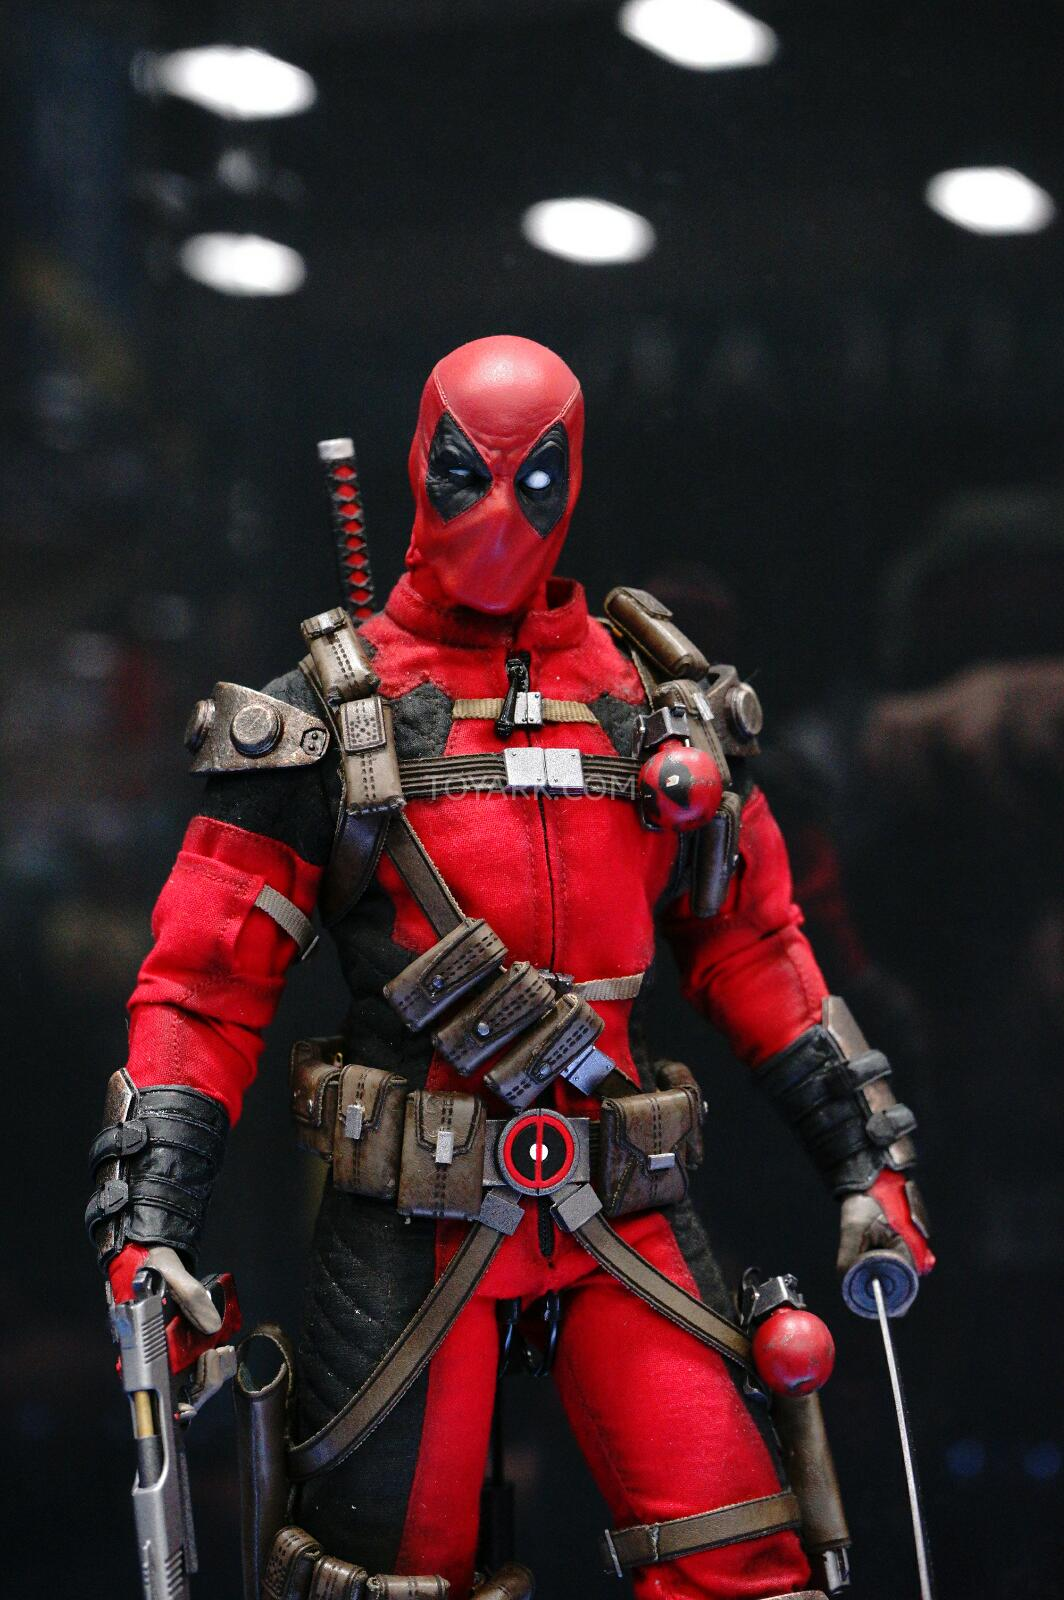 [Sideshow] Marvel Sixth Scale Collection - Deadpool DSC07543